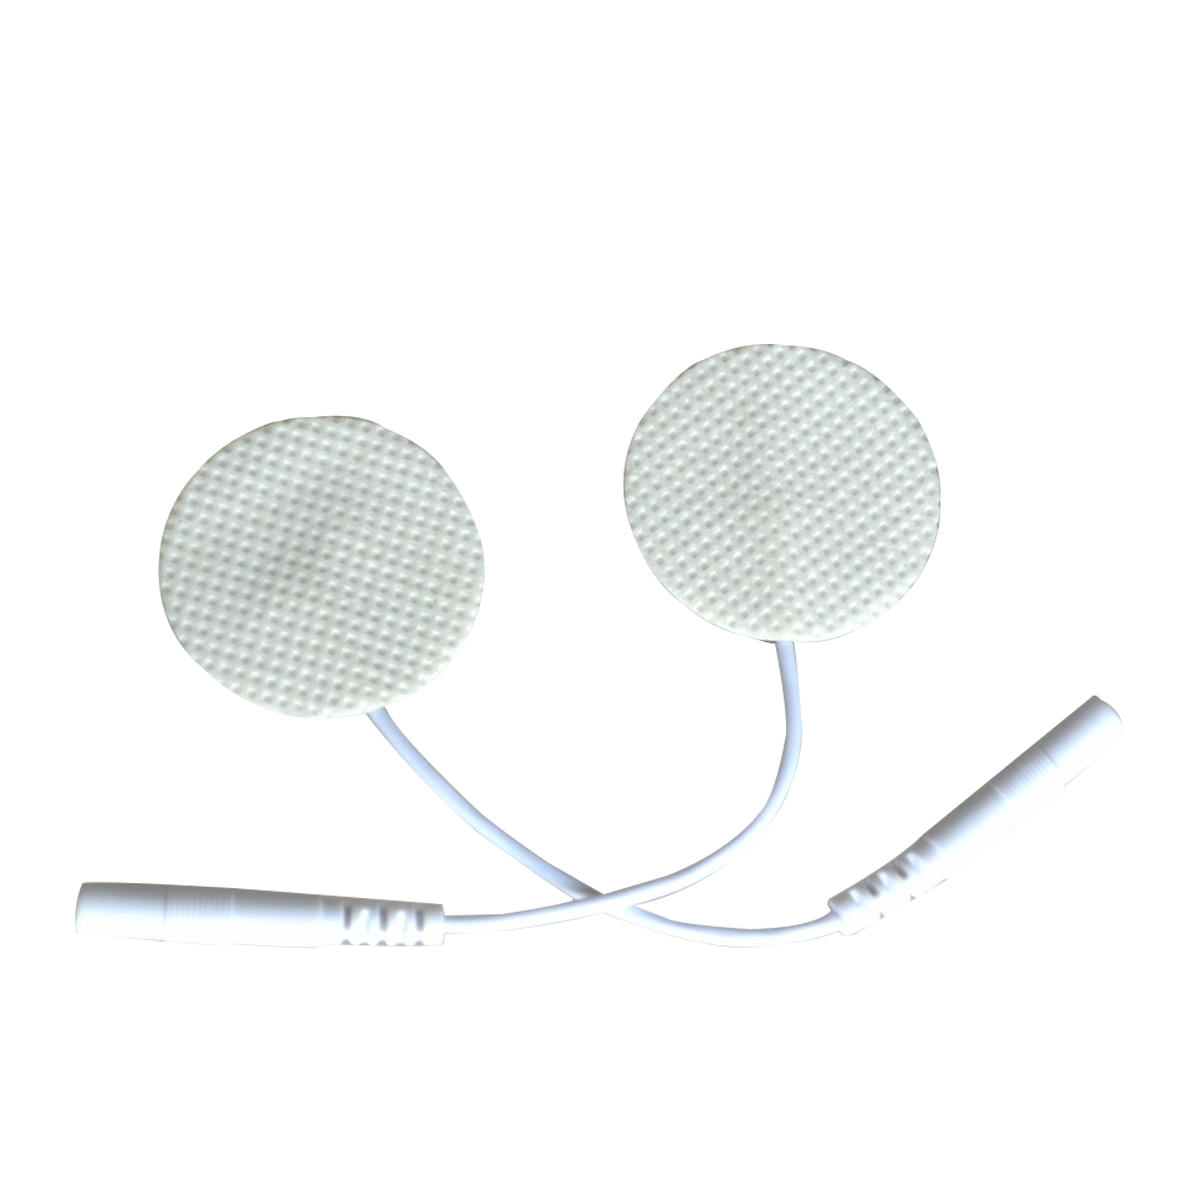 200Pairs/Lot Body Massager Round Pads Diameter 3cm Tens Electrode Pads For Slimming Massage Digital Therapy Machine Device hot electric slimming full body relax pulse muscle stimulator tens therapy machine massager vibrateur with 20pcs tens pads